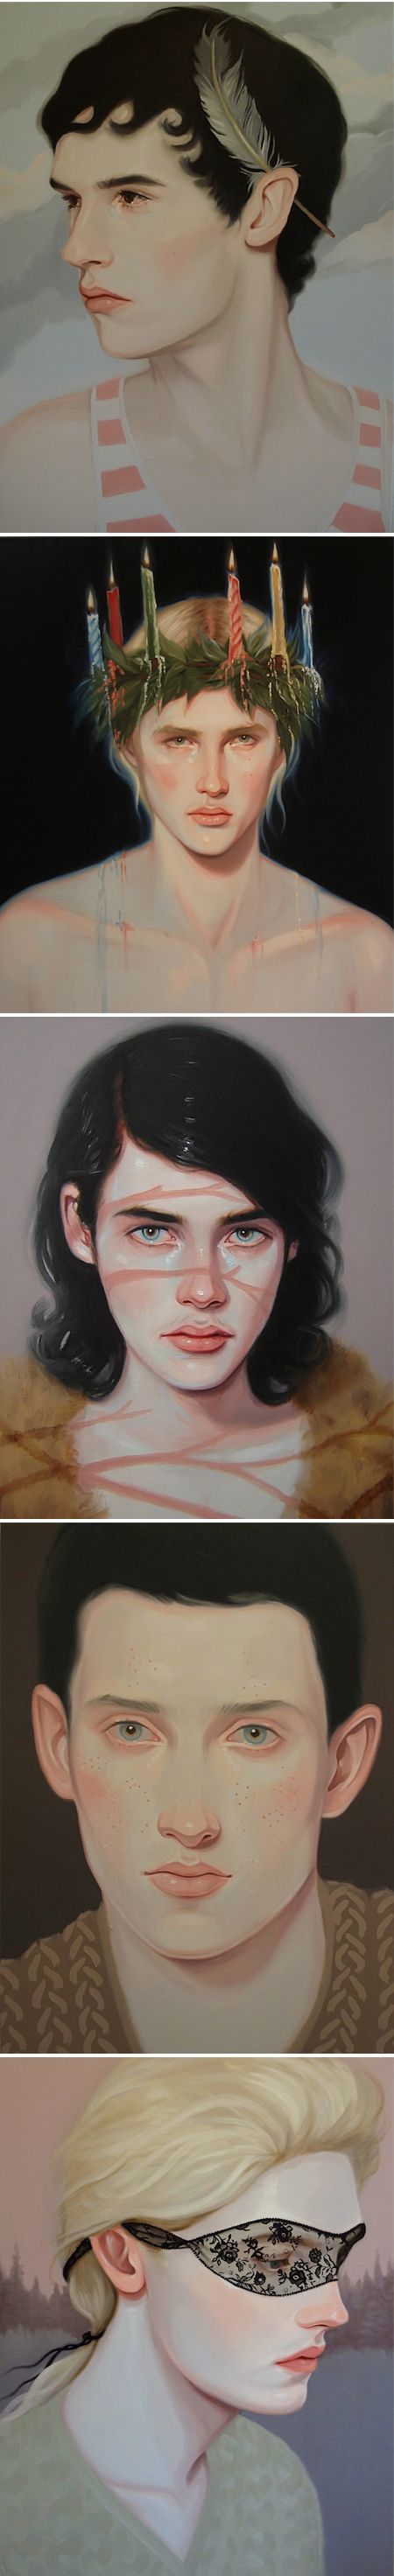 Portraits; omg im obsessed with this WTAF WOW.WOW.WOW. i am doing portraits like these with this color palette